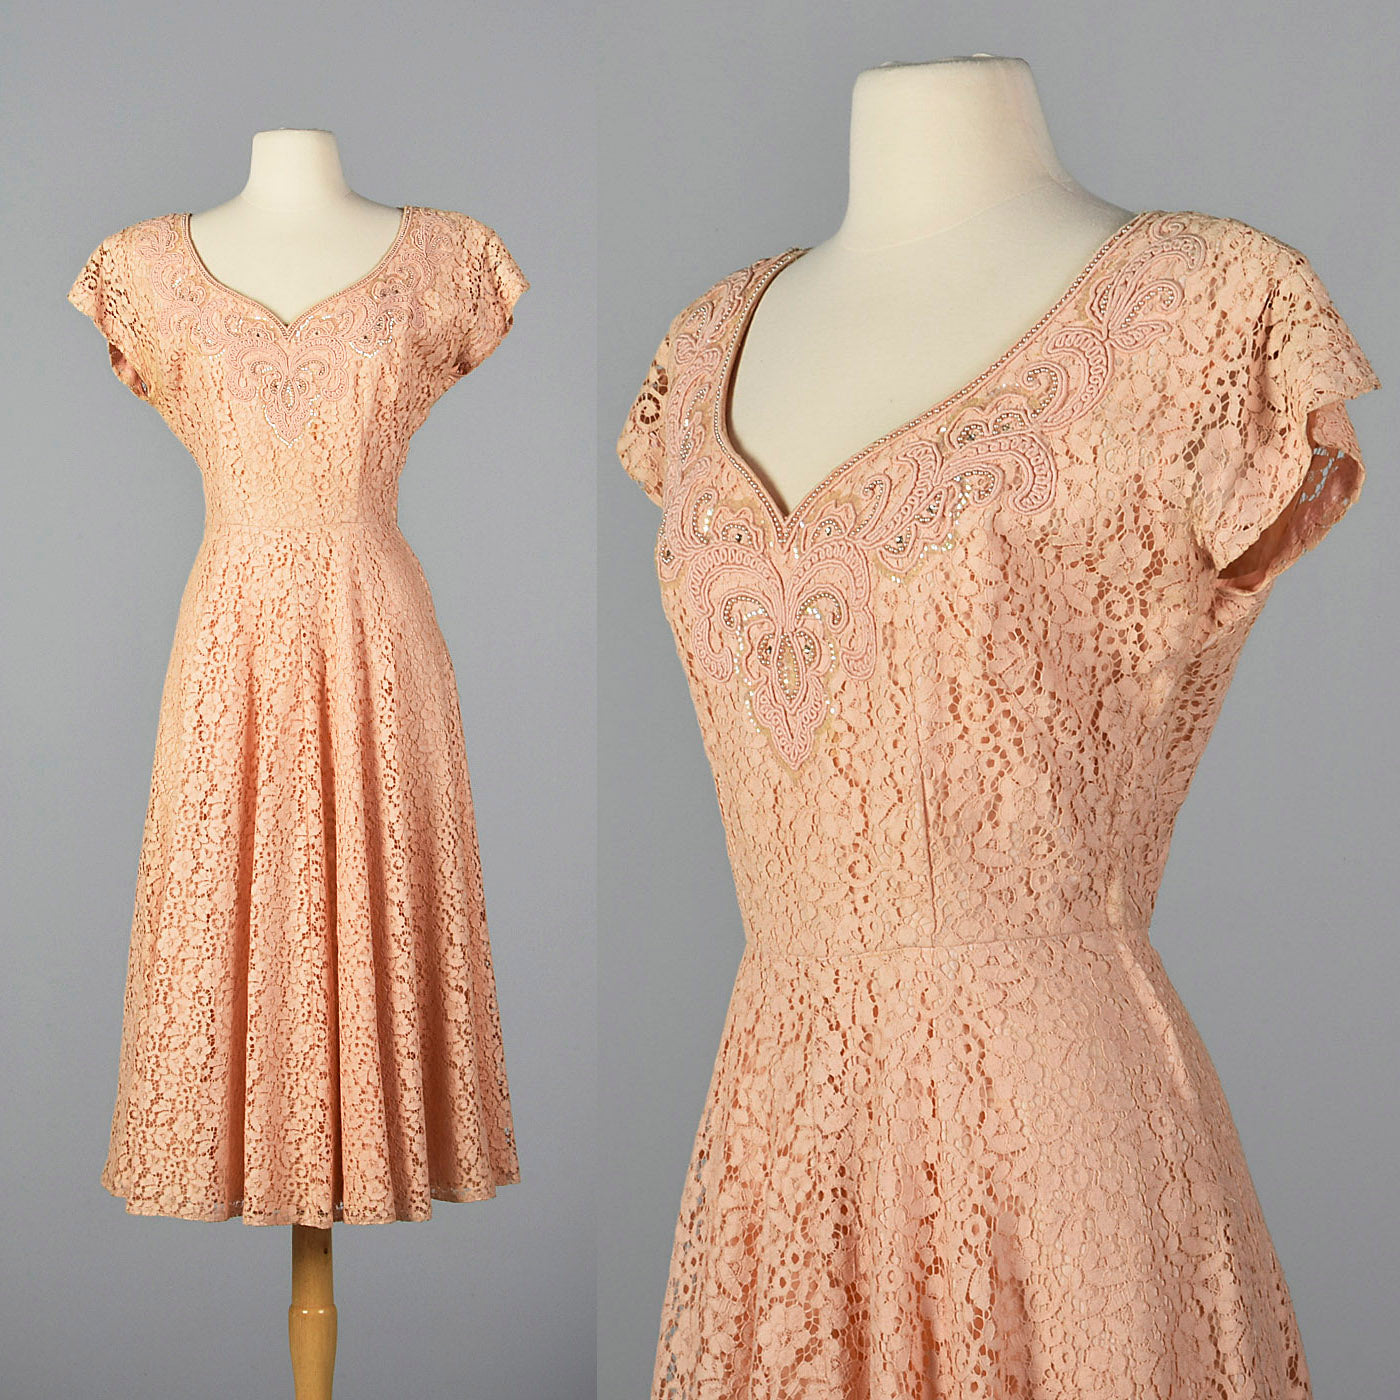 1950s Pink Lace Dress with Beaded Bodice